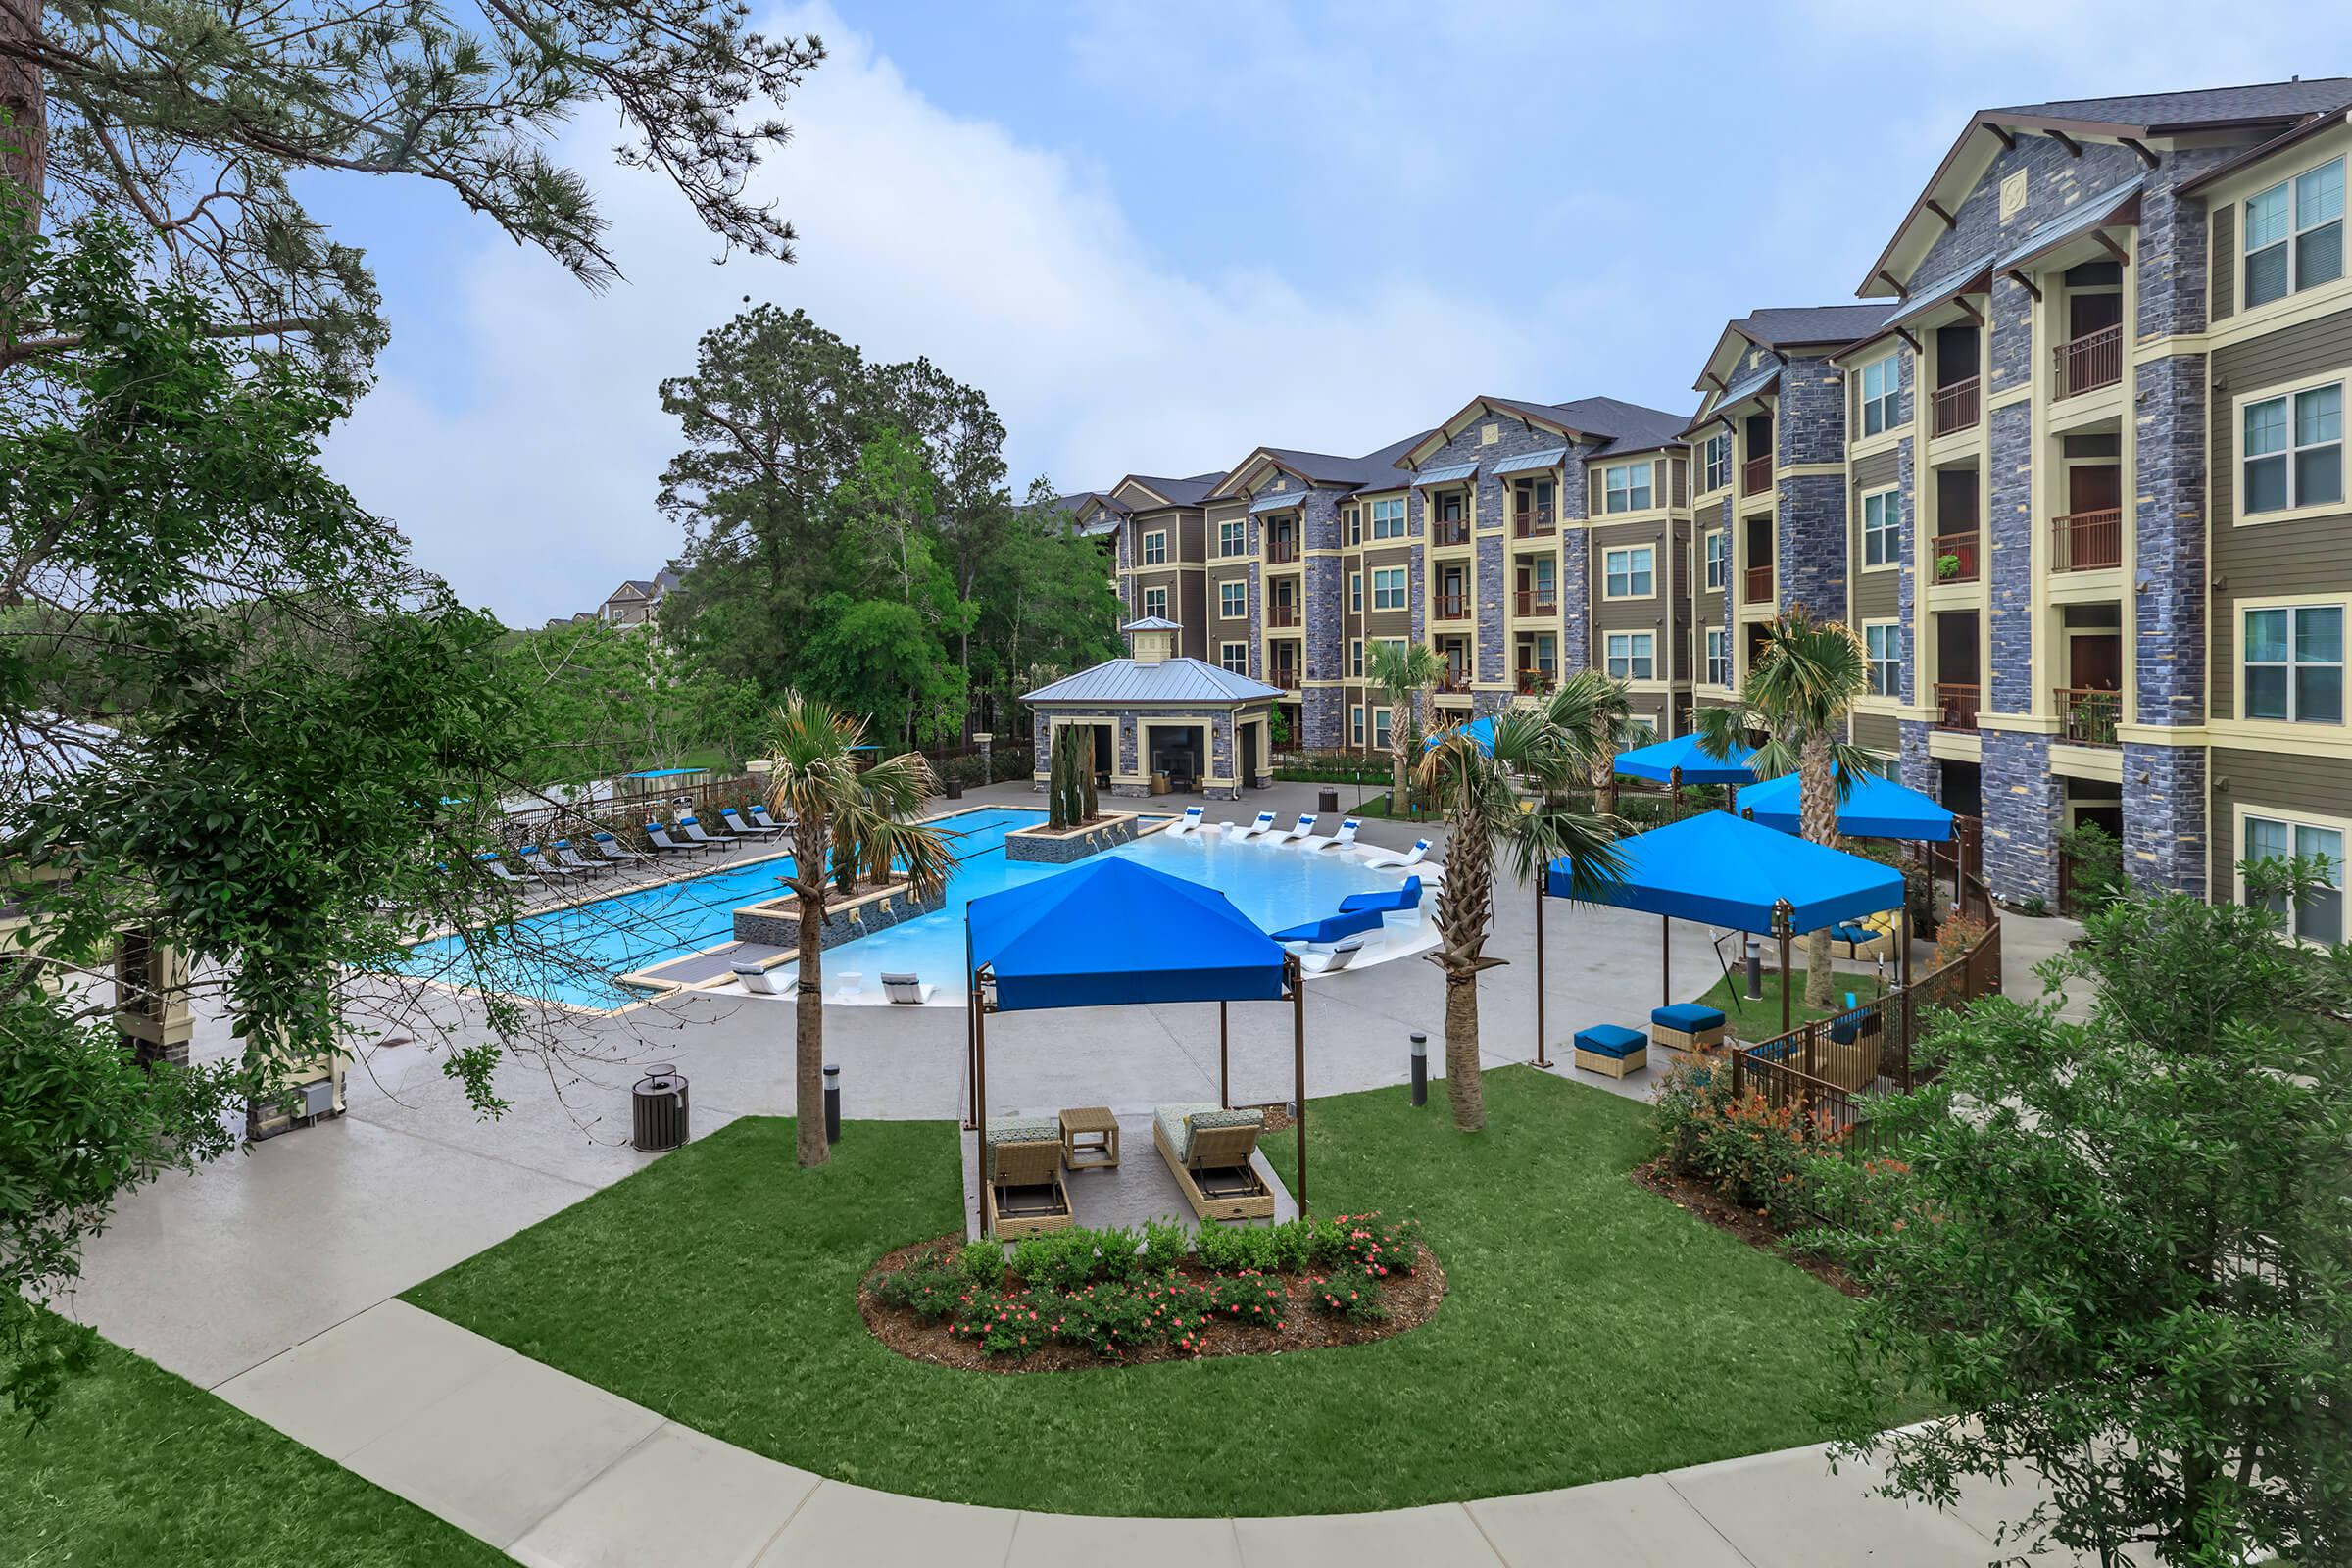 View of the pool area with cabanas, landscaping, and brand new apartment community.